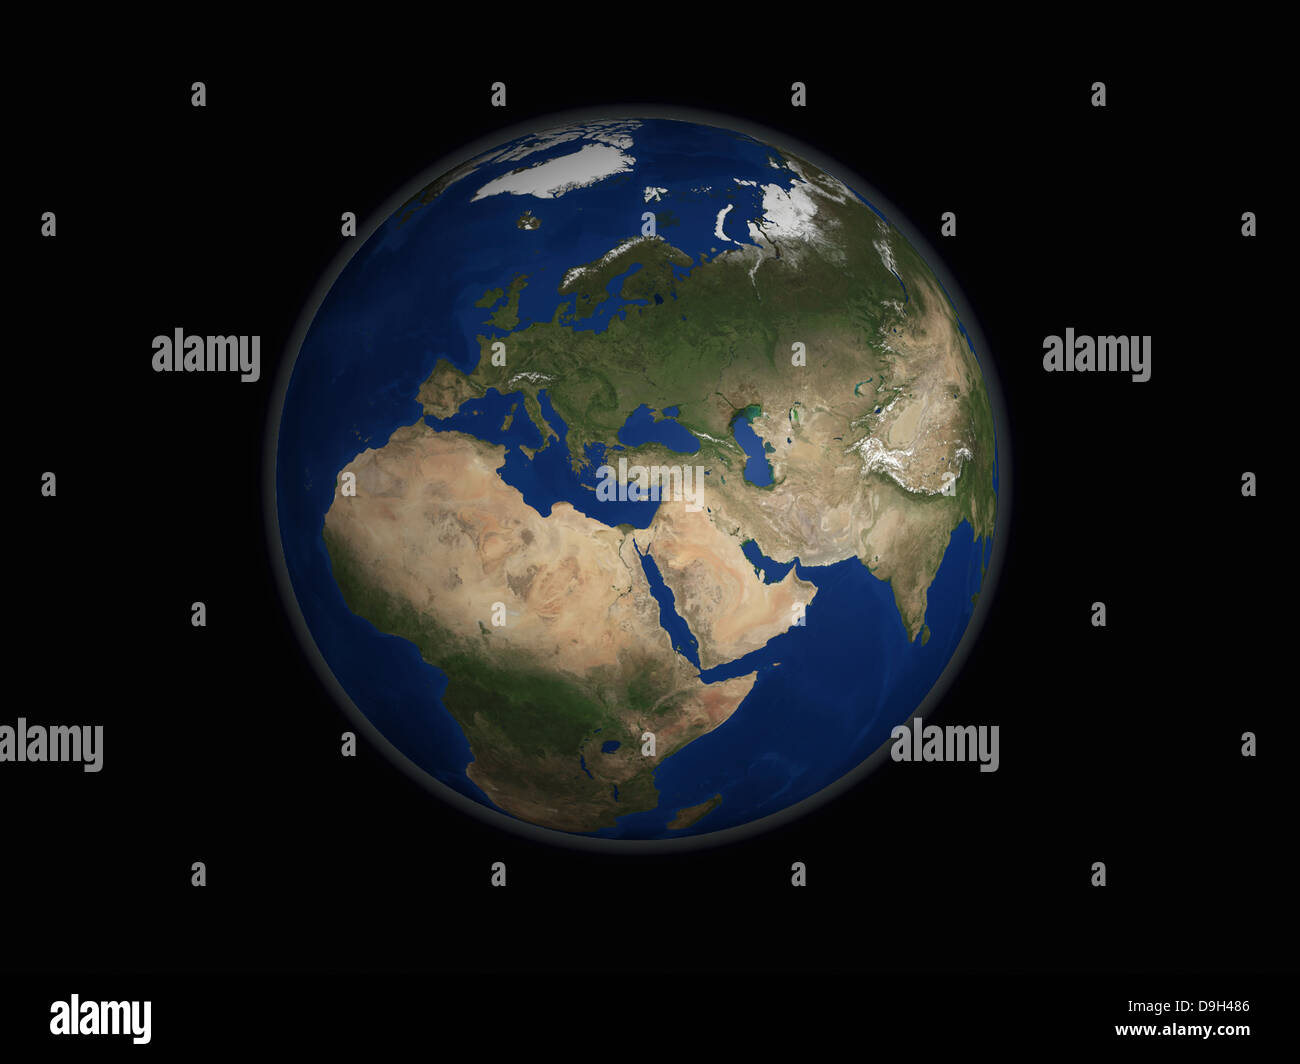 Full Earth view showing Africa, Europe, the Middle East, and India. - Stock Image